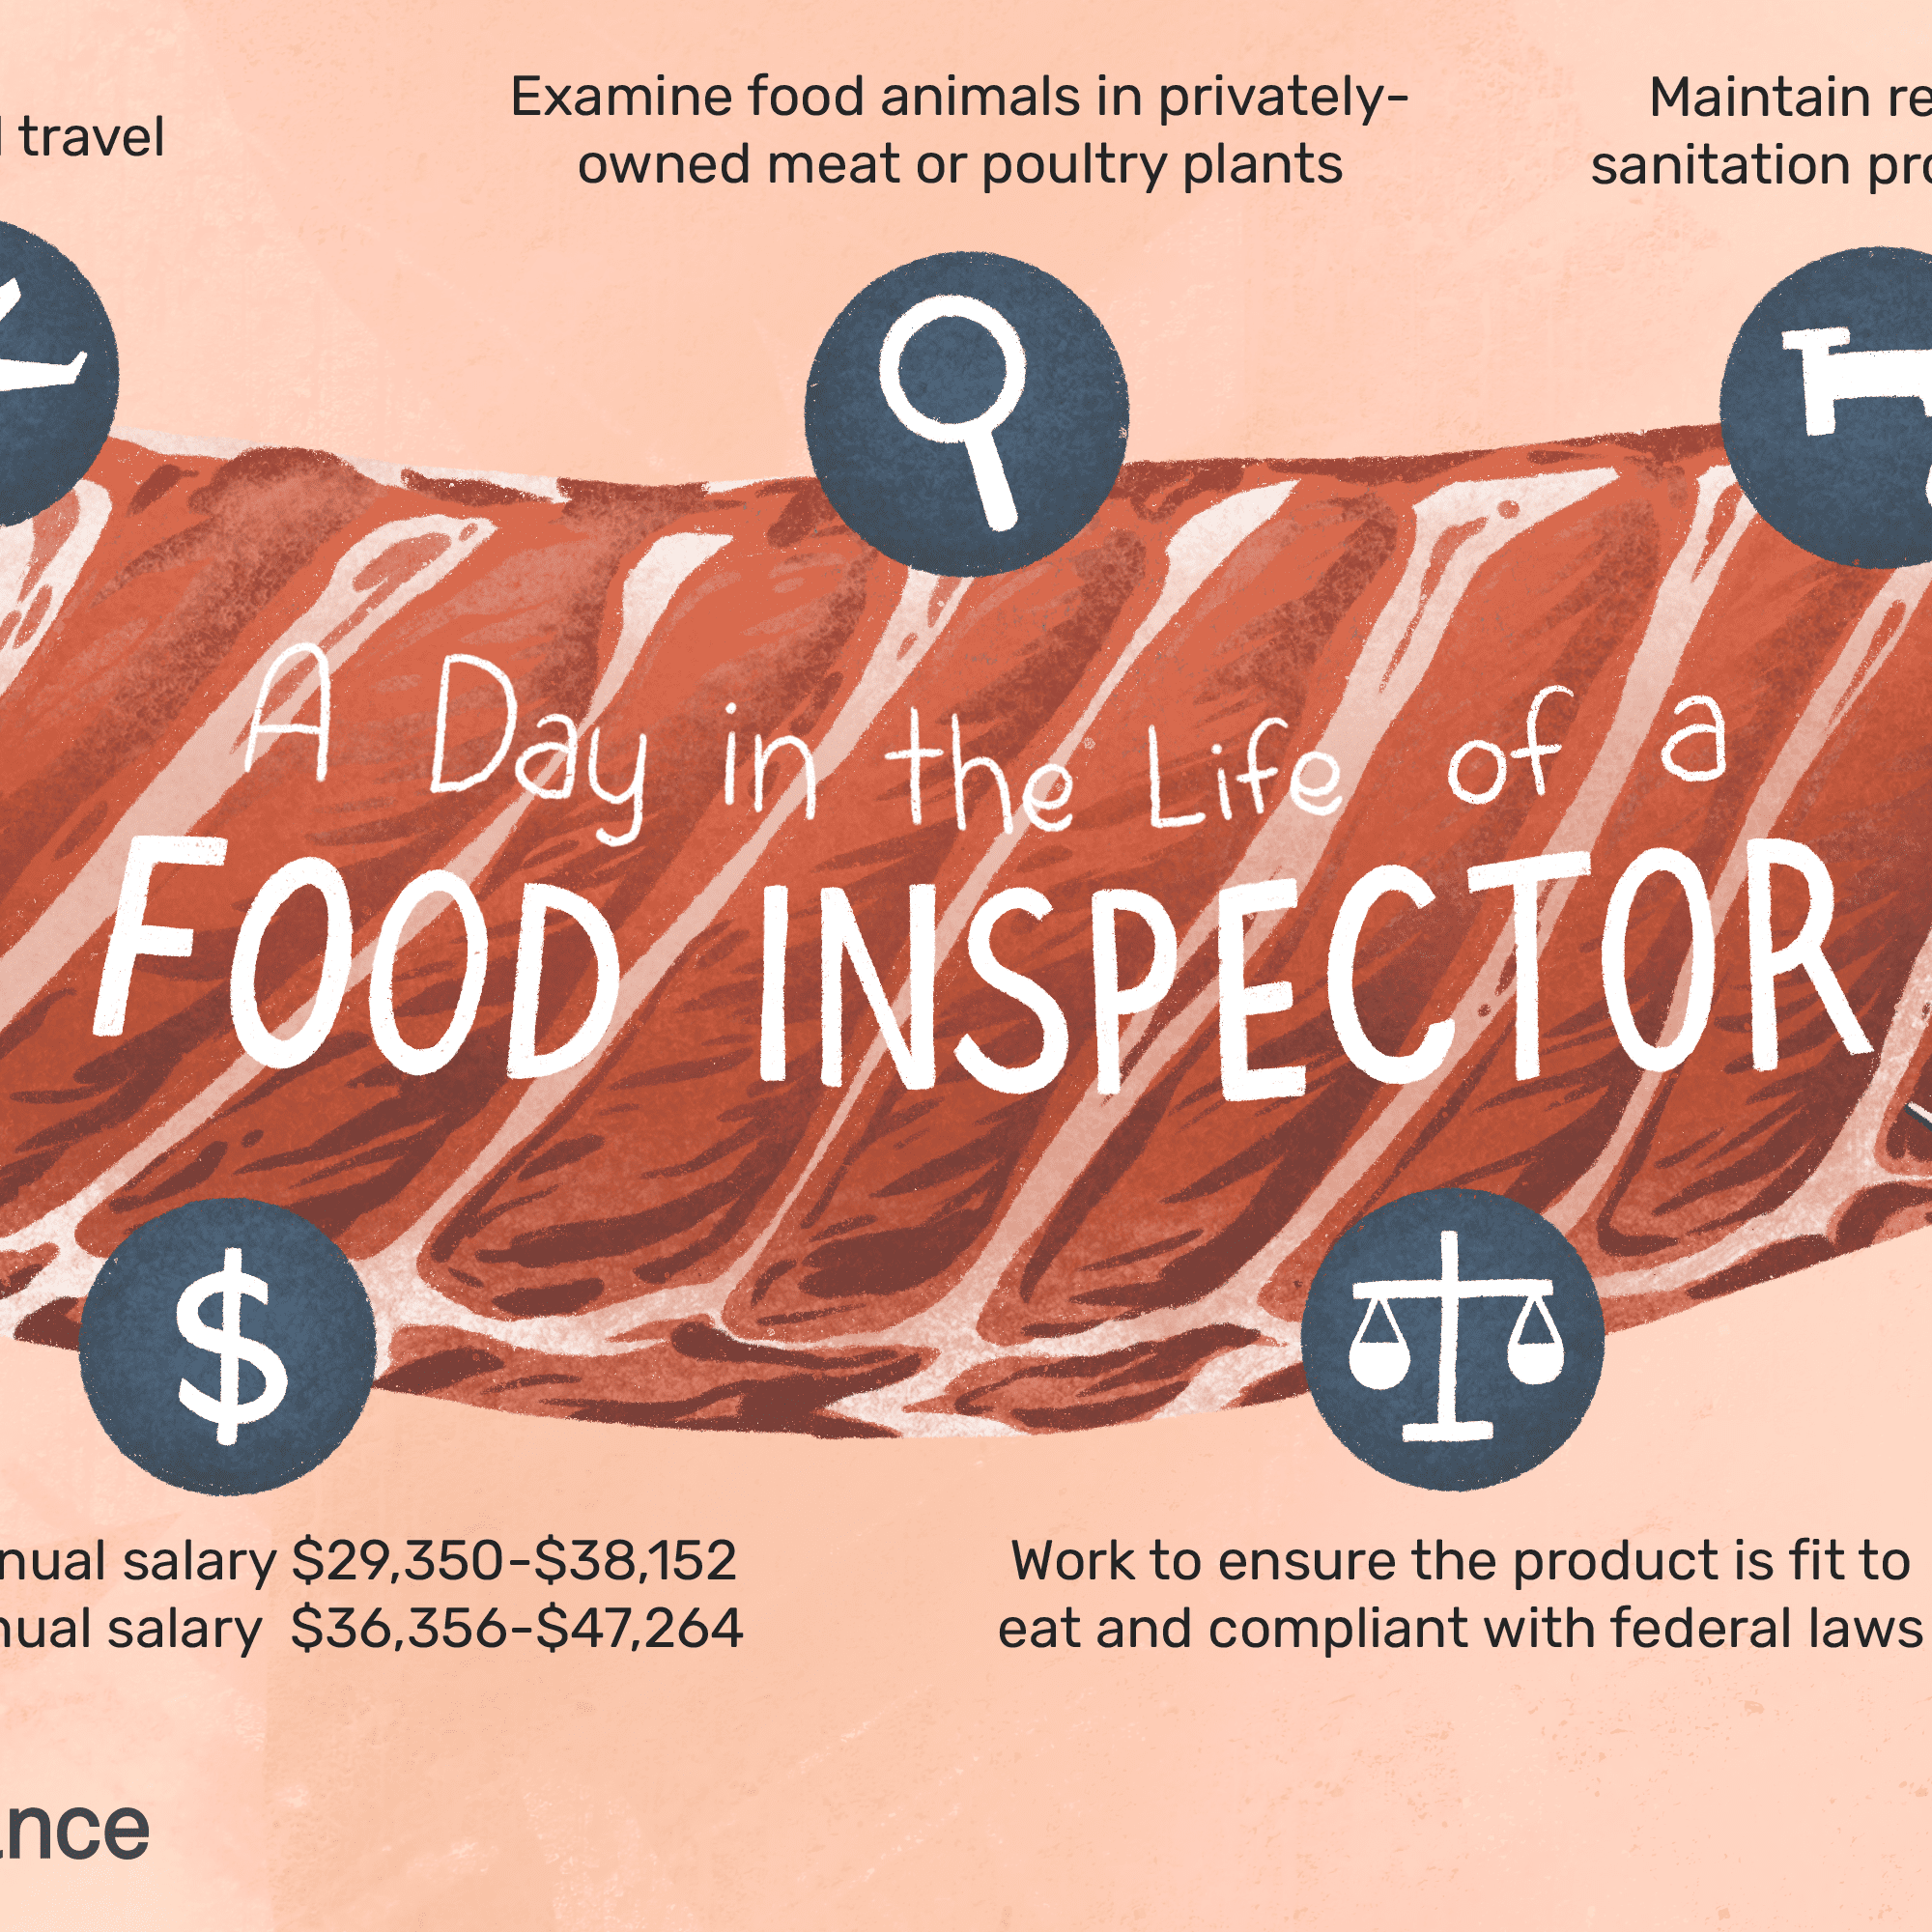 Food Inspector Job Description: Salary, Skills, & More